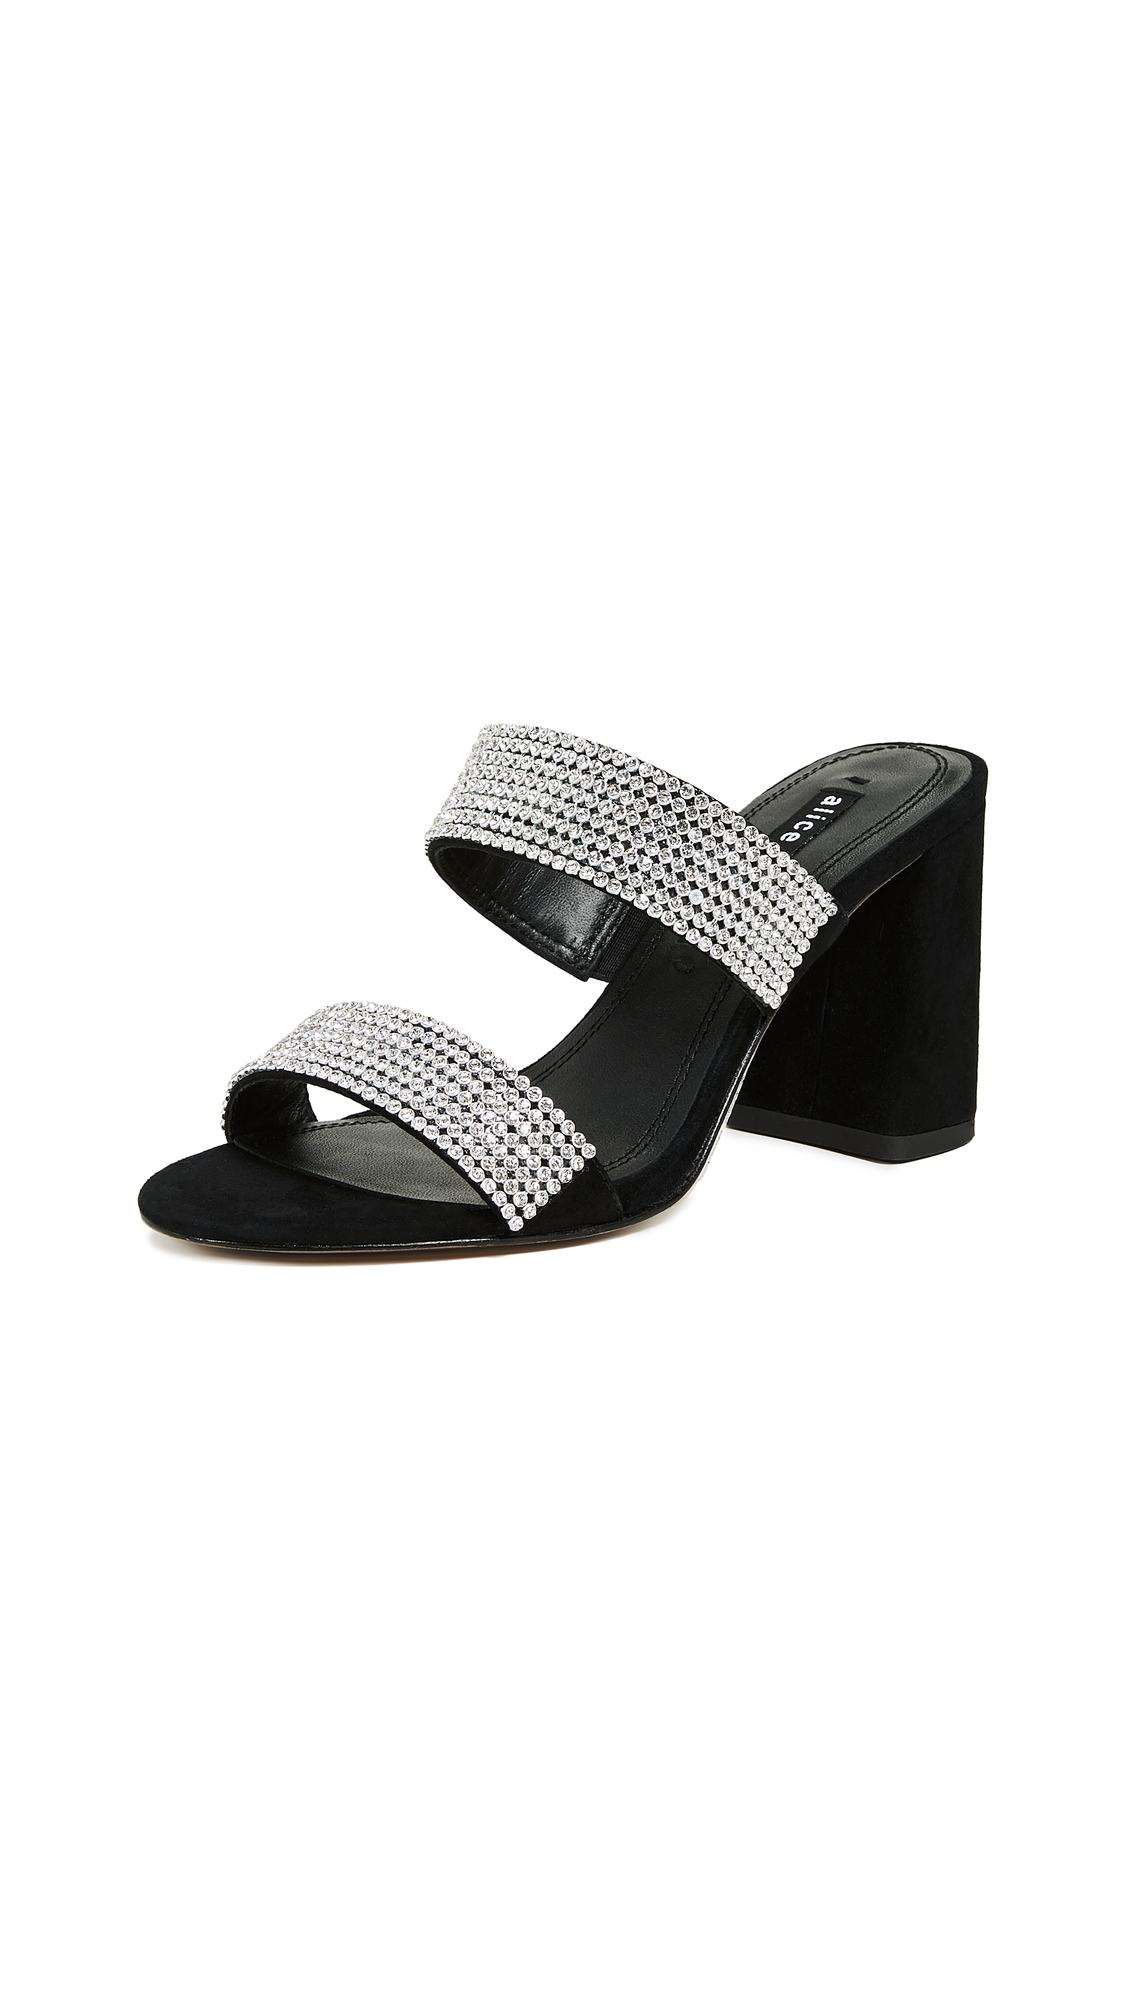 alice + olivia Laleah Double Strap Sandals - Black/Clear